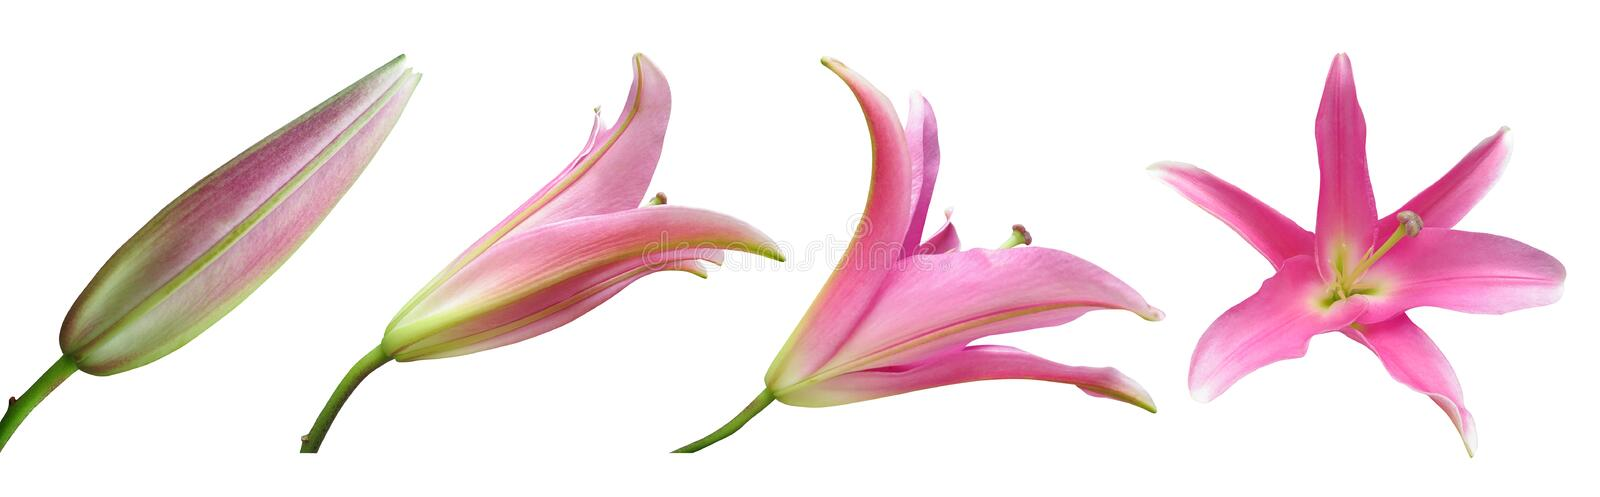 Lily flower stages stock photo image of concept isolated 43324844 download lily flower stages stock photo image of concept isolated 43324844 mightylinksfo